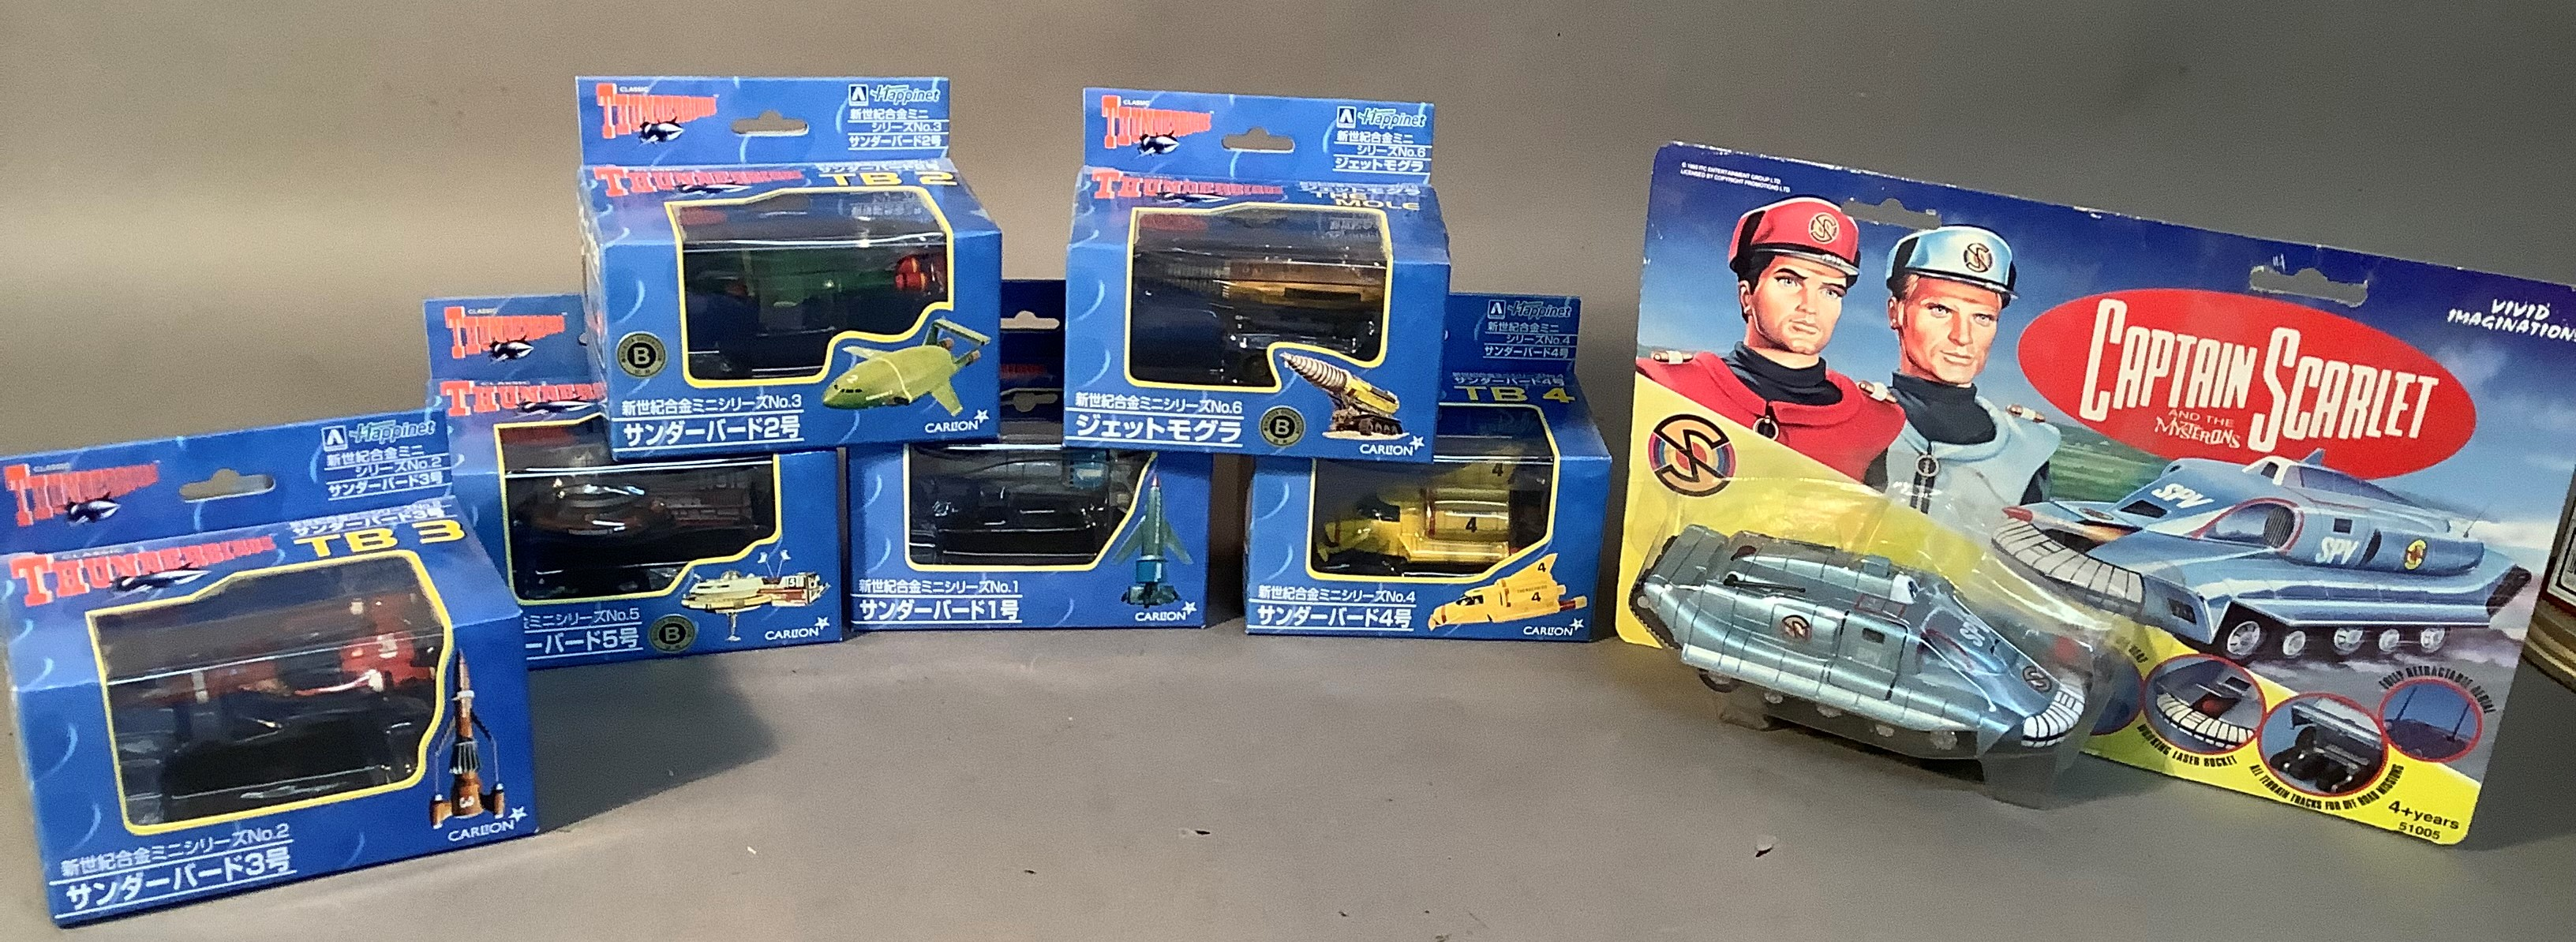 Six Miracle House Classic Thunderbirds craft: TB1, 2, 3, 4, 5 and The Mole; together with a Vivid